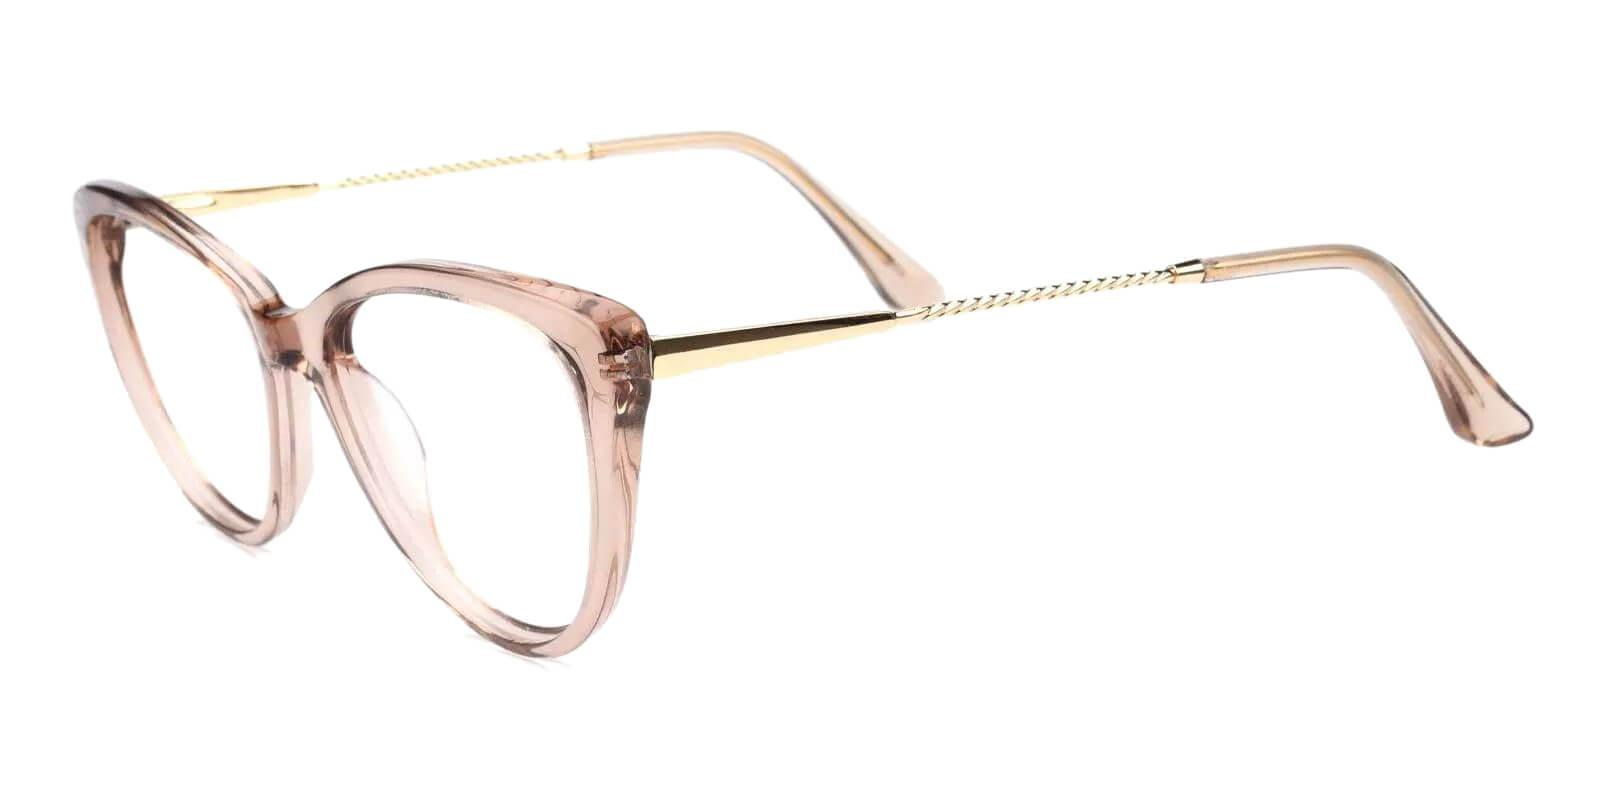 Satin Pink Metal , Acetate SpringHinges , Fashion , UniversalBridgeFit , Eyeglasses Frames from ABBE Glasses